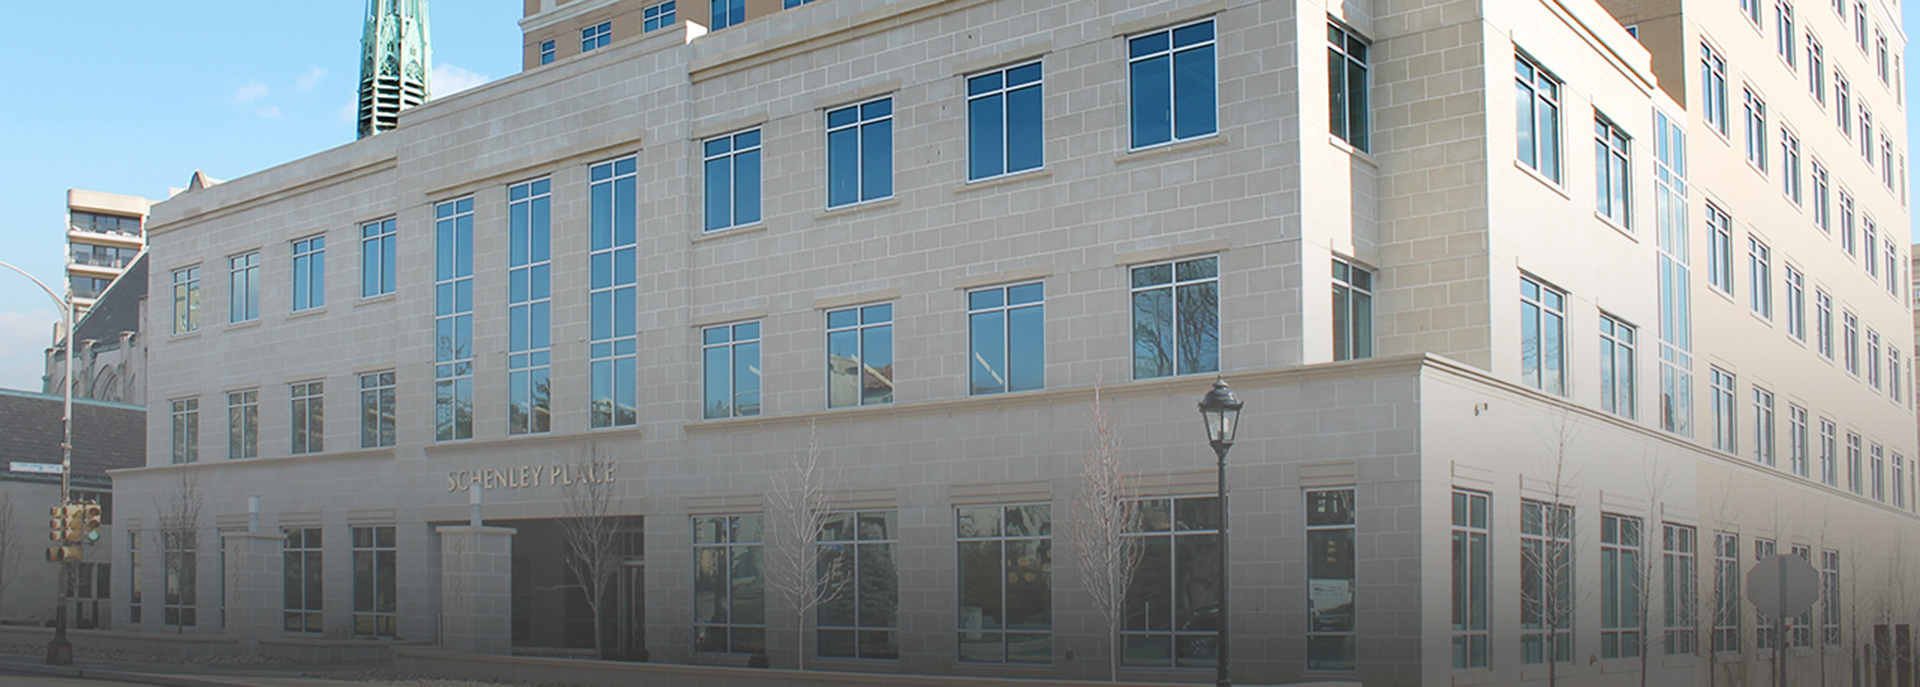 Shcenley Place Office Building